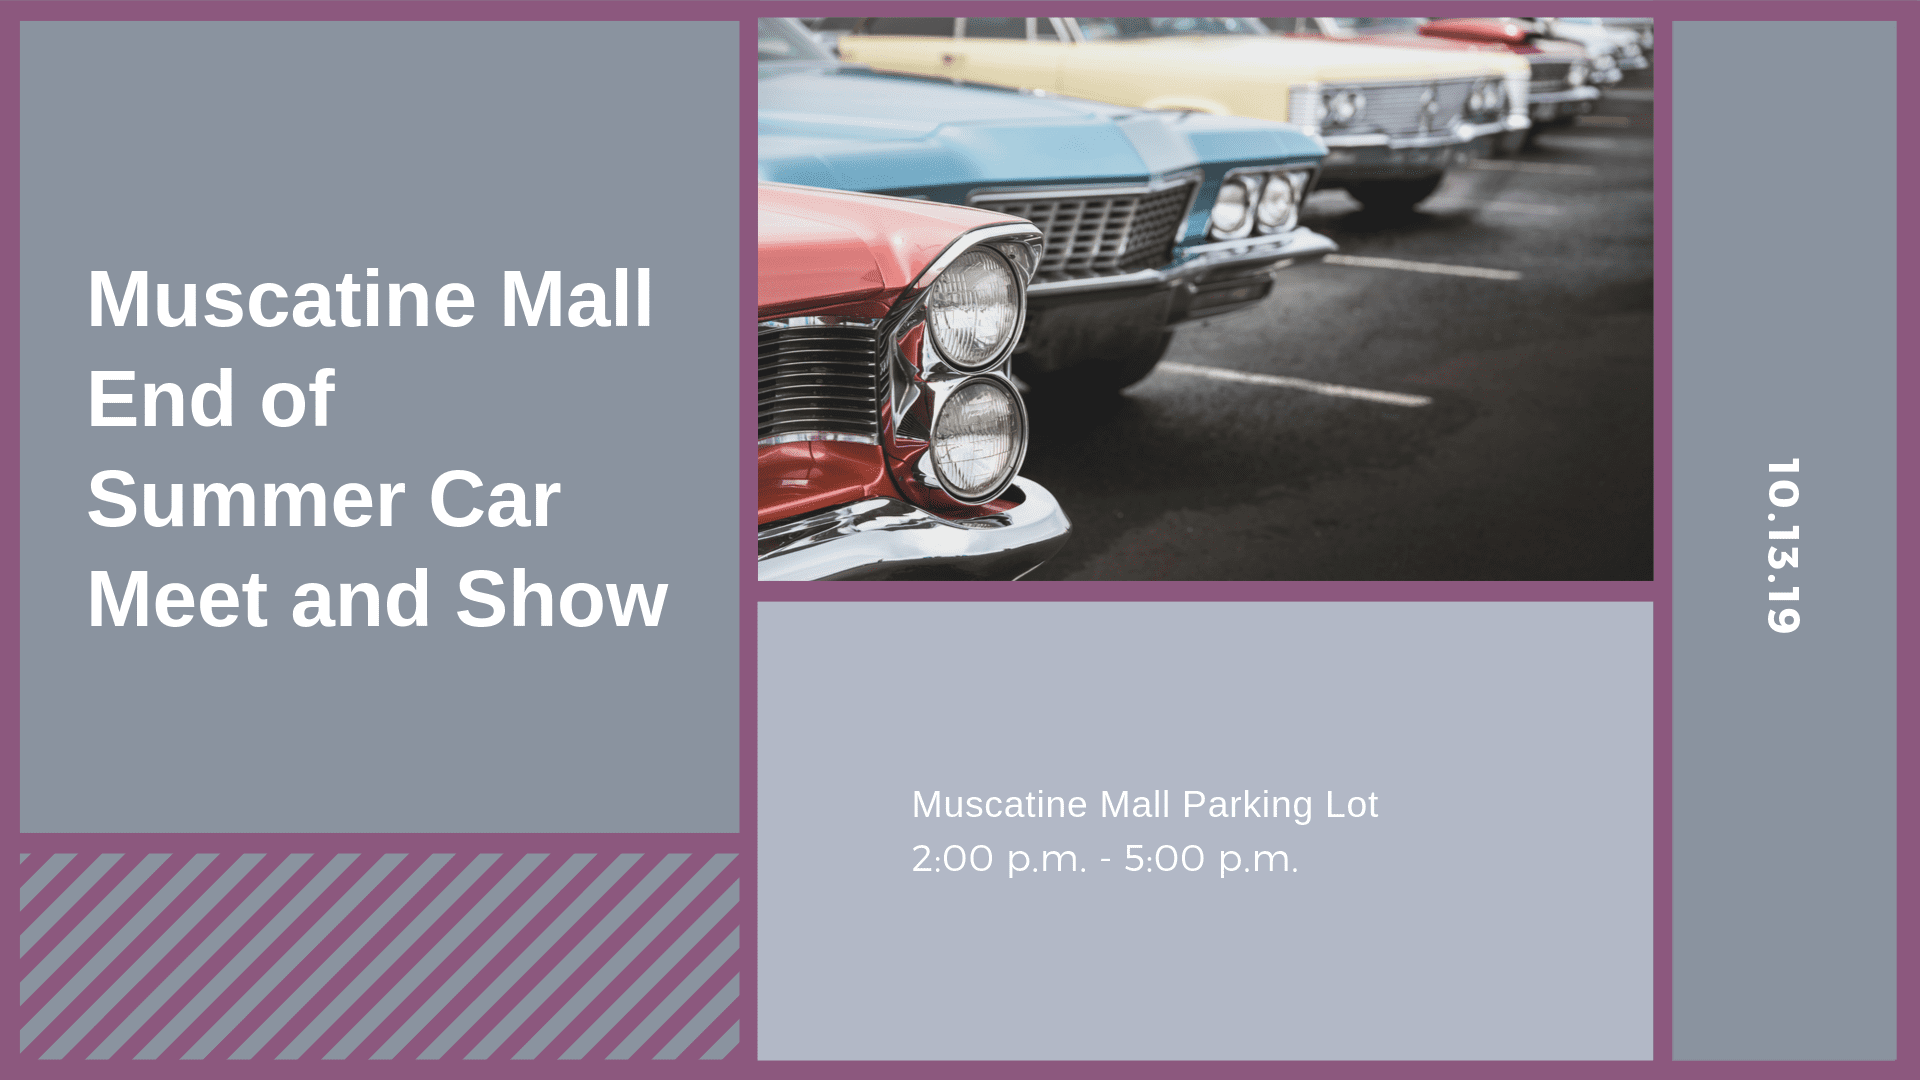 Muscatine Mall End of Summer Car Meet and Show